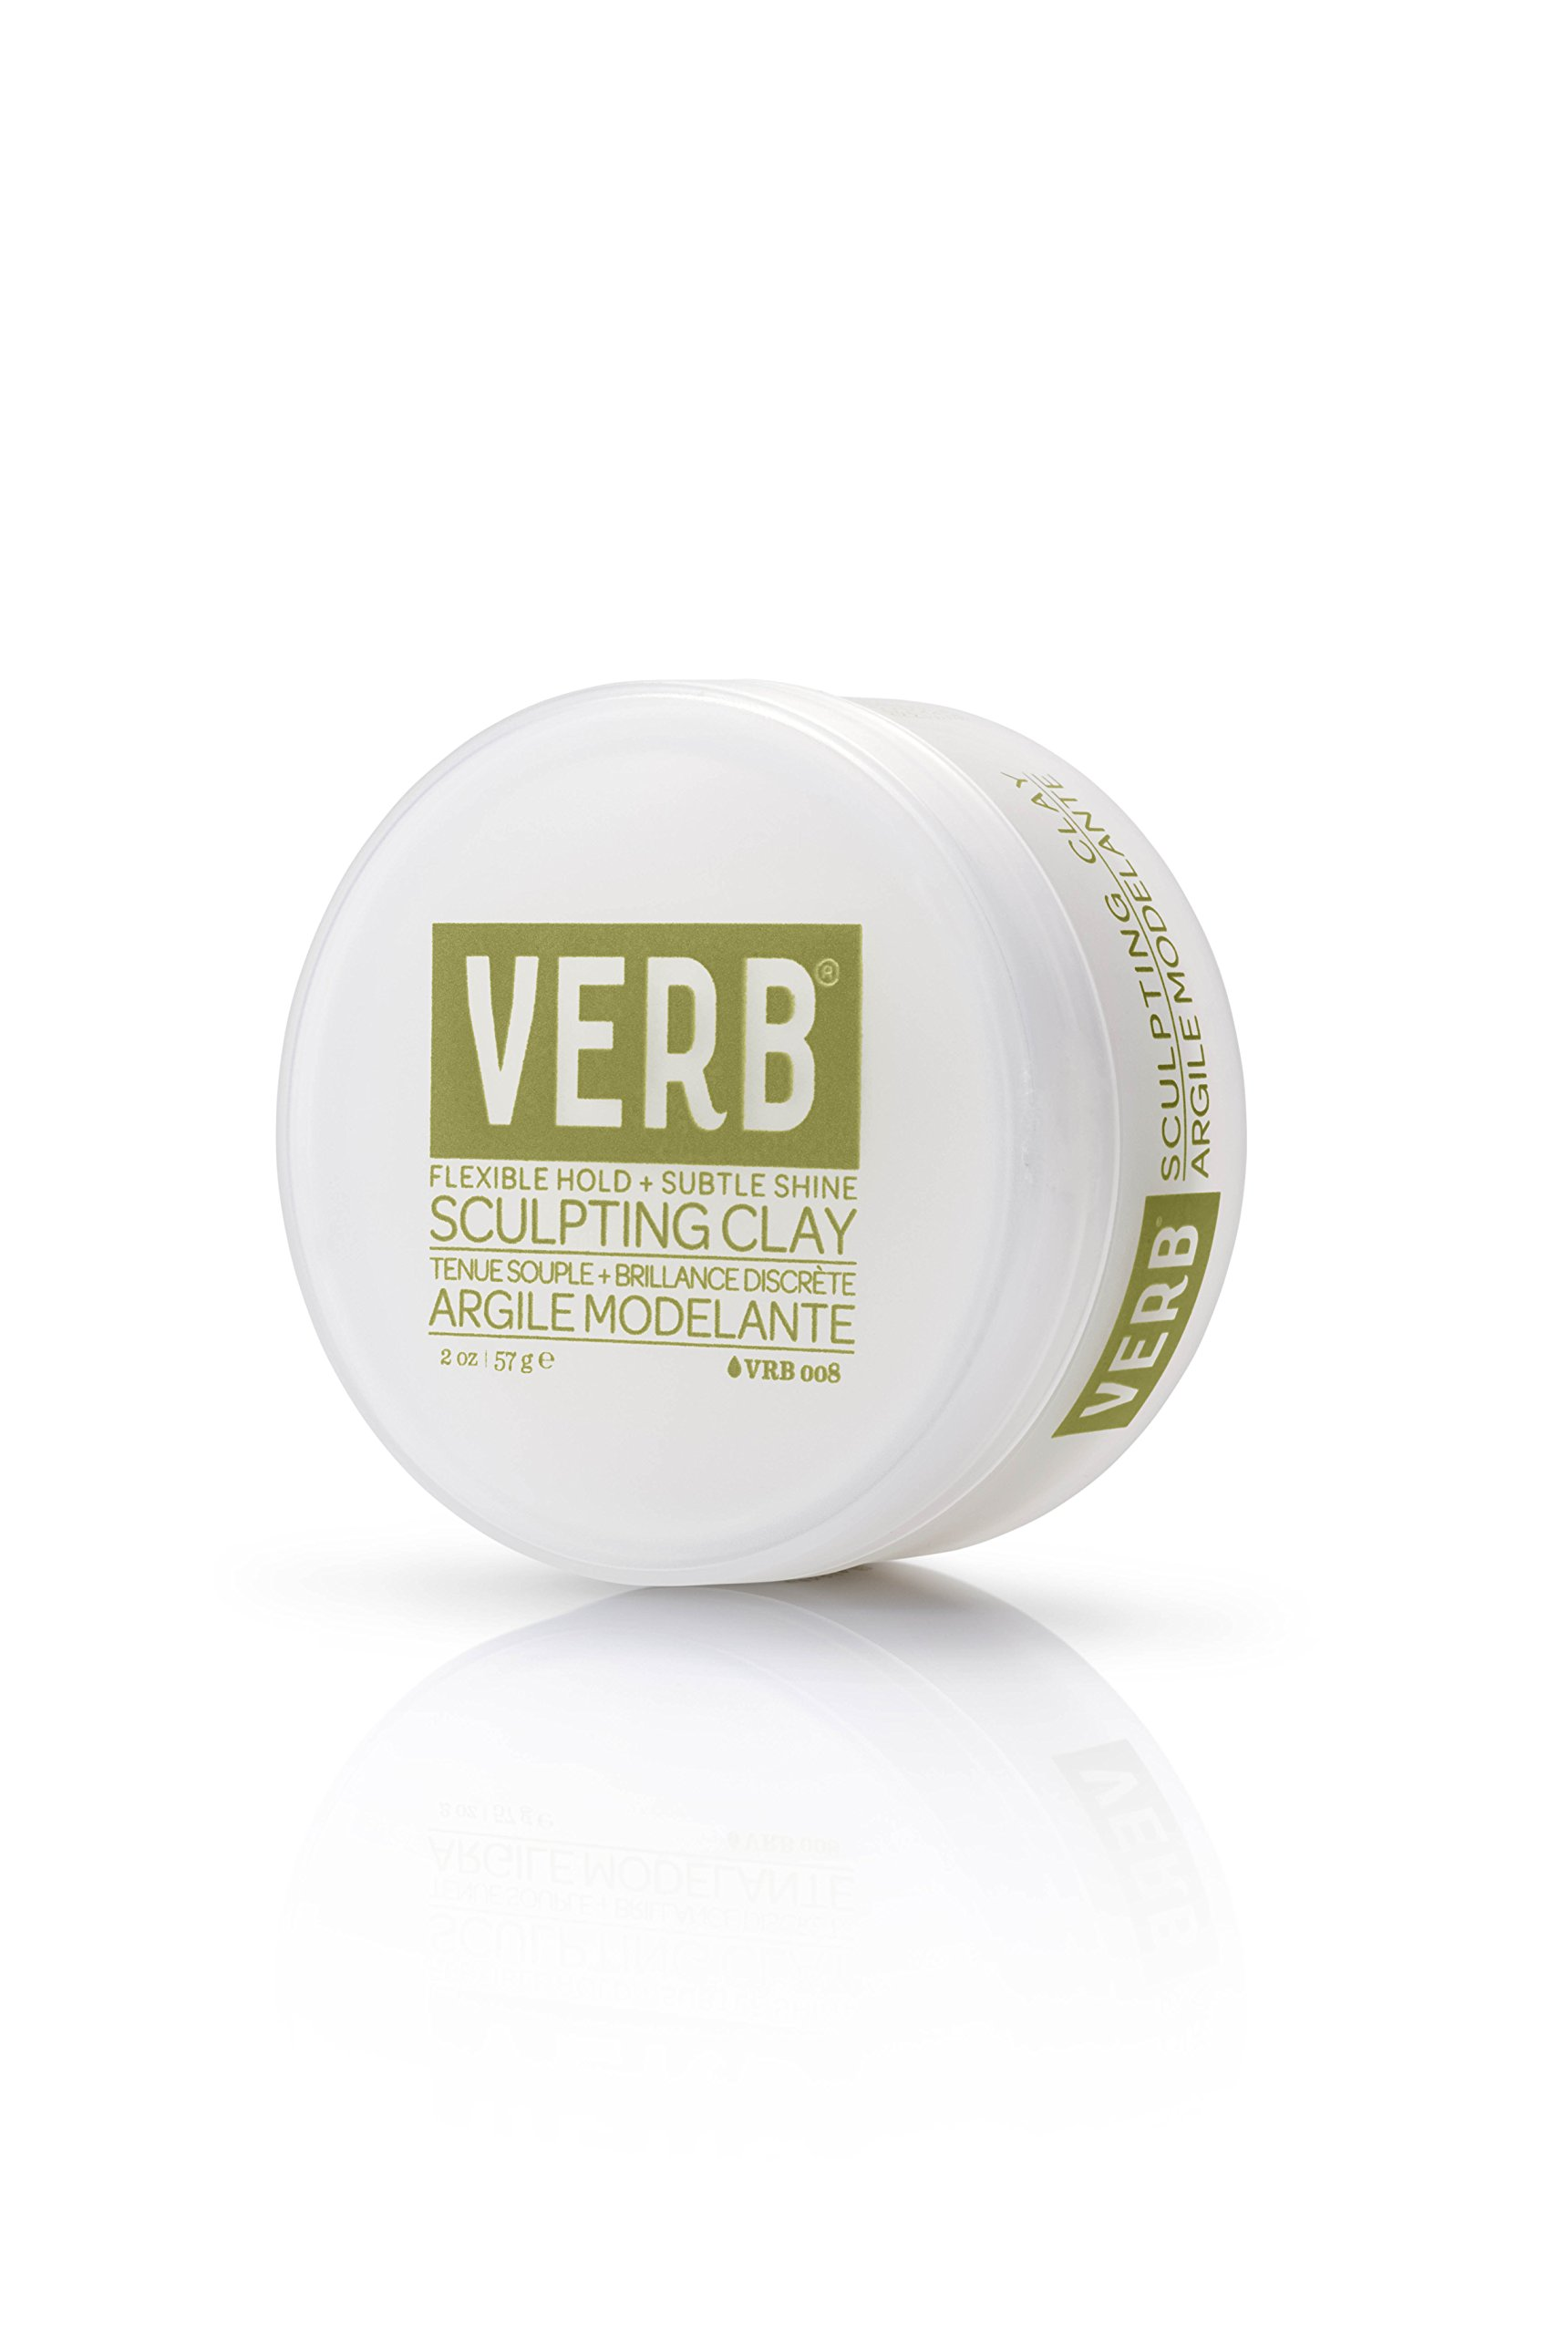 Verb Sculpting Clay - Flexible Hold + Subtle Shine 2oz by verb